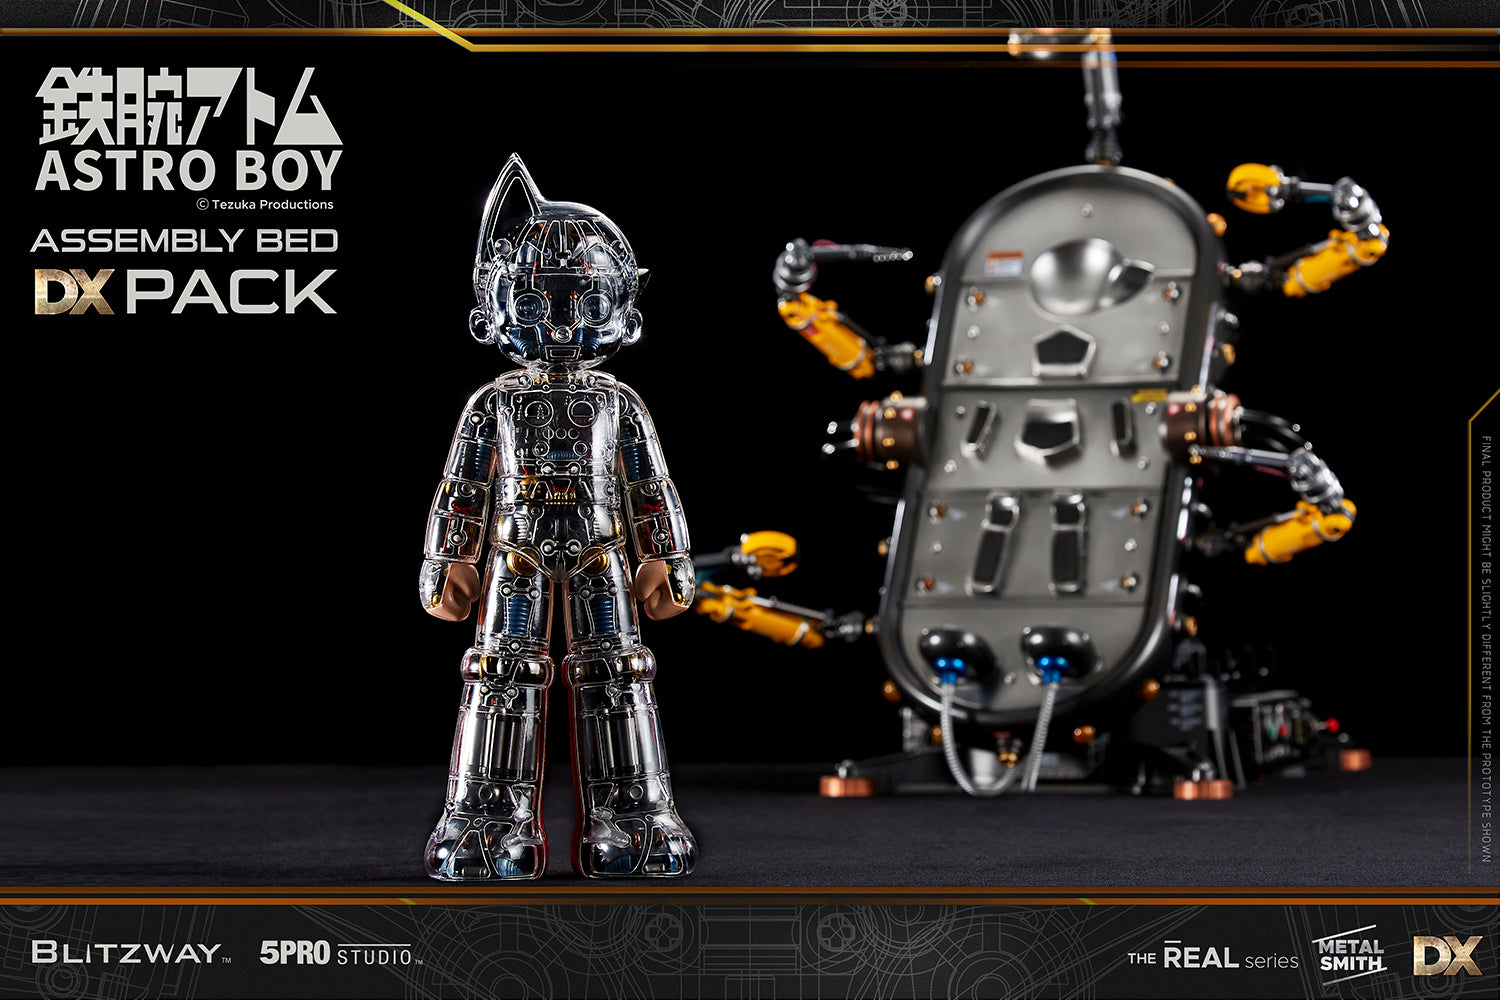 5Pro Studio - The Real Series - Astro Boy (Clear Ver. with Assembly Bed DX Pack)